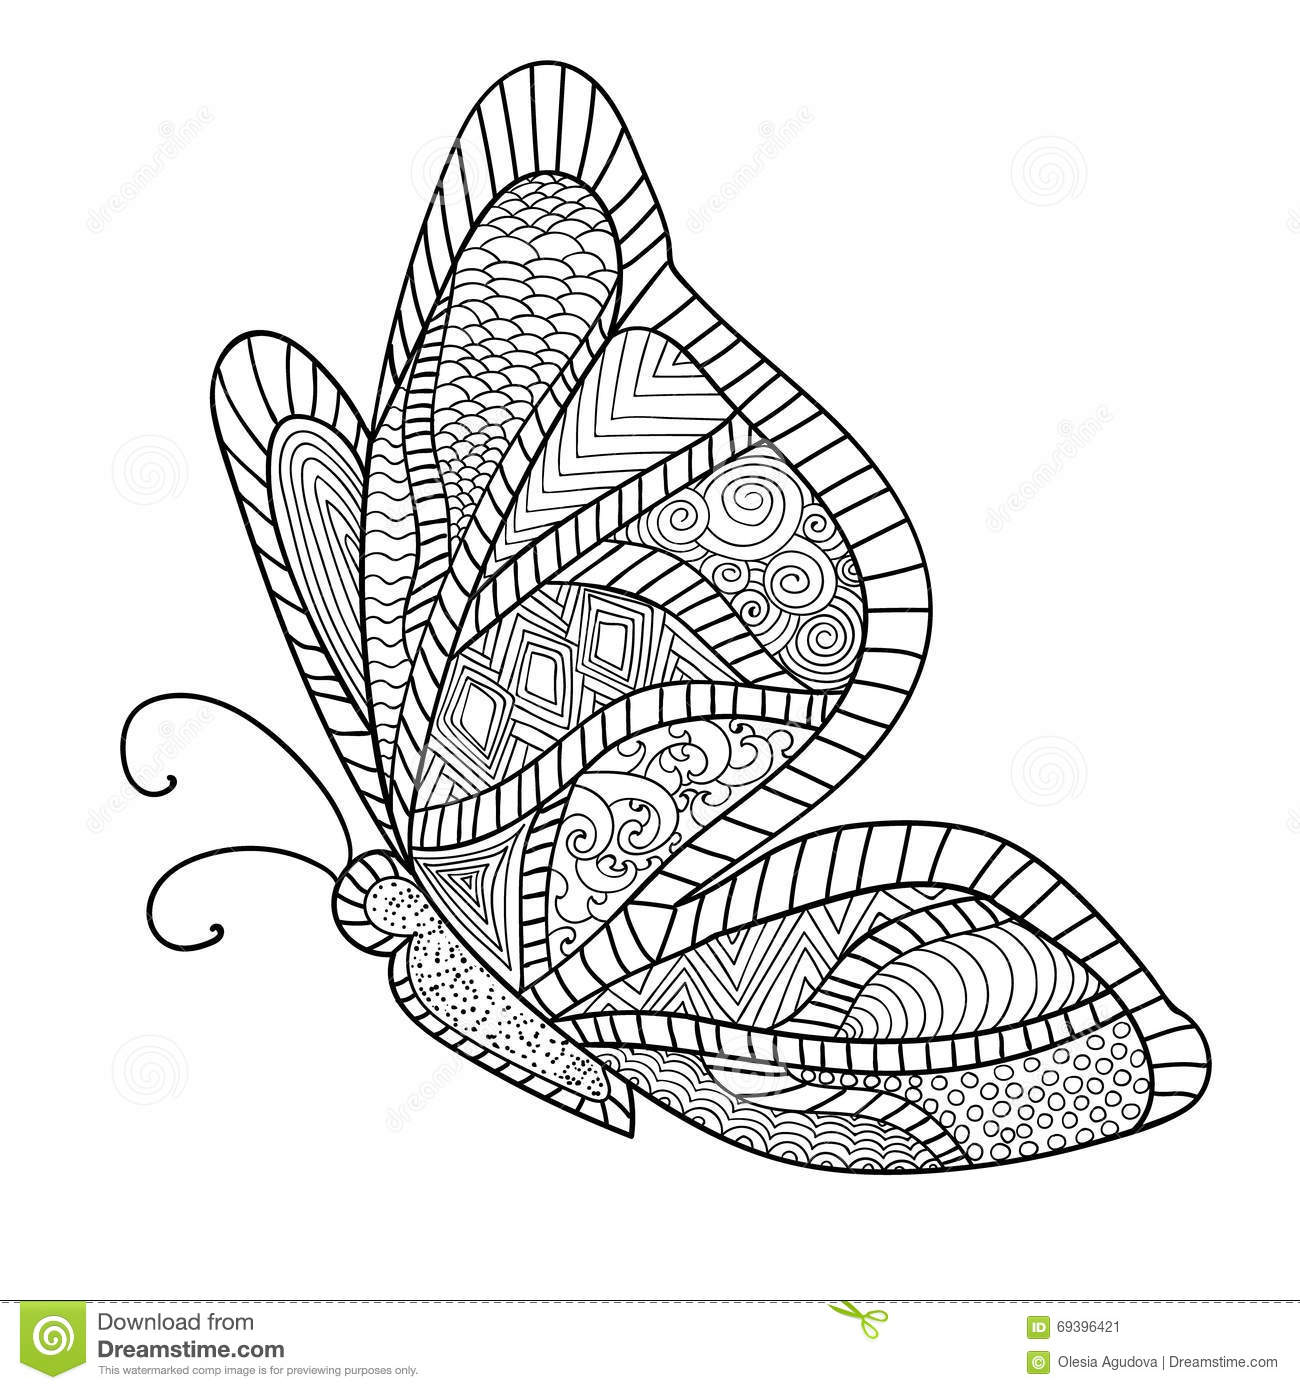 anxiety coloring pages - photo#33